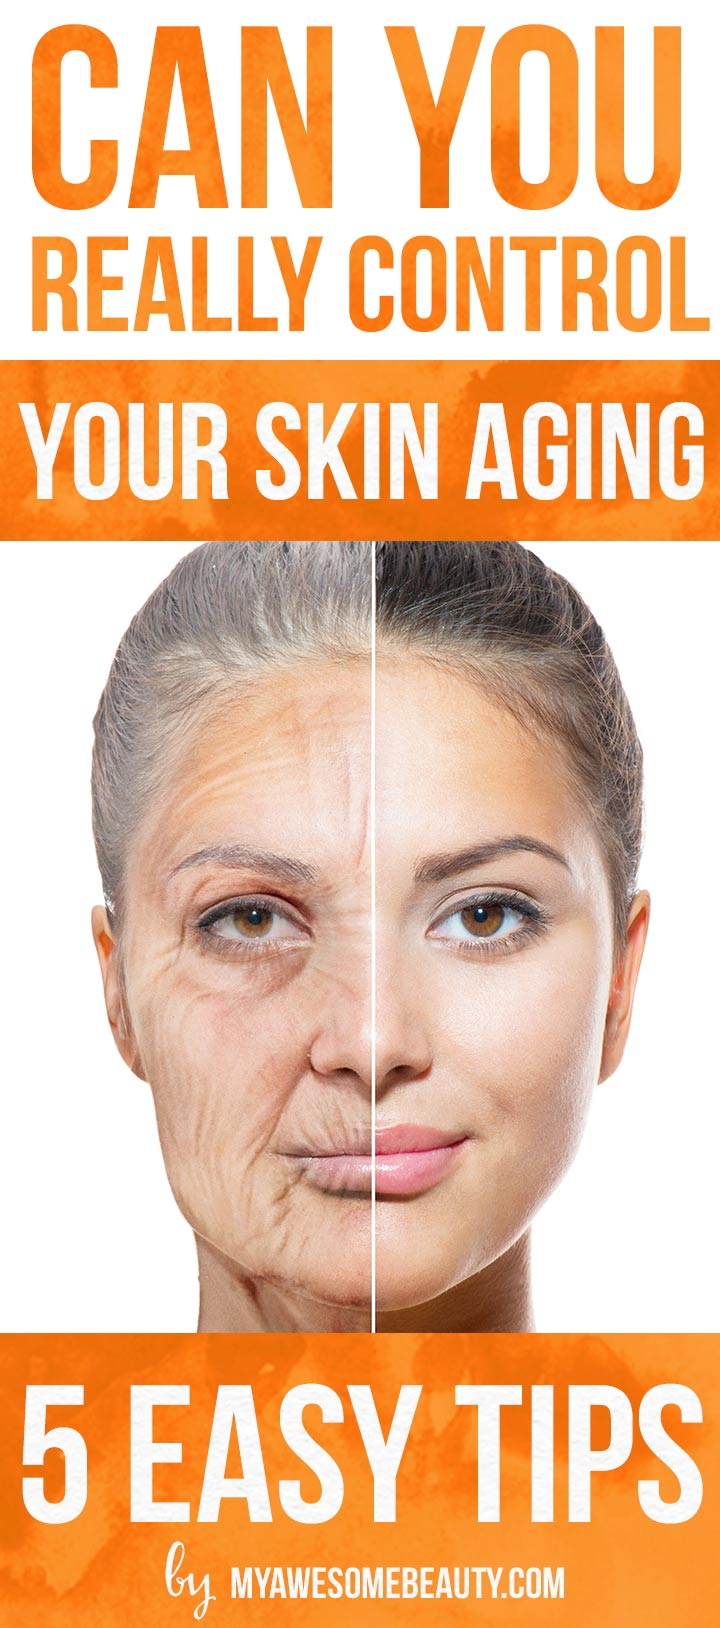 can we really control our skin aging?